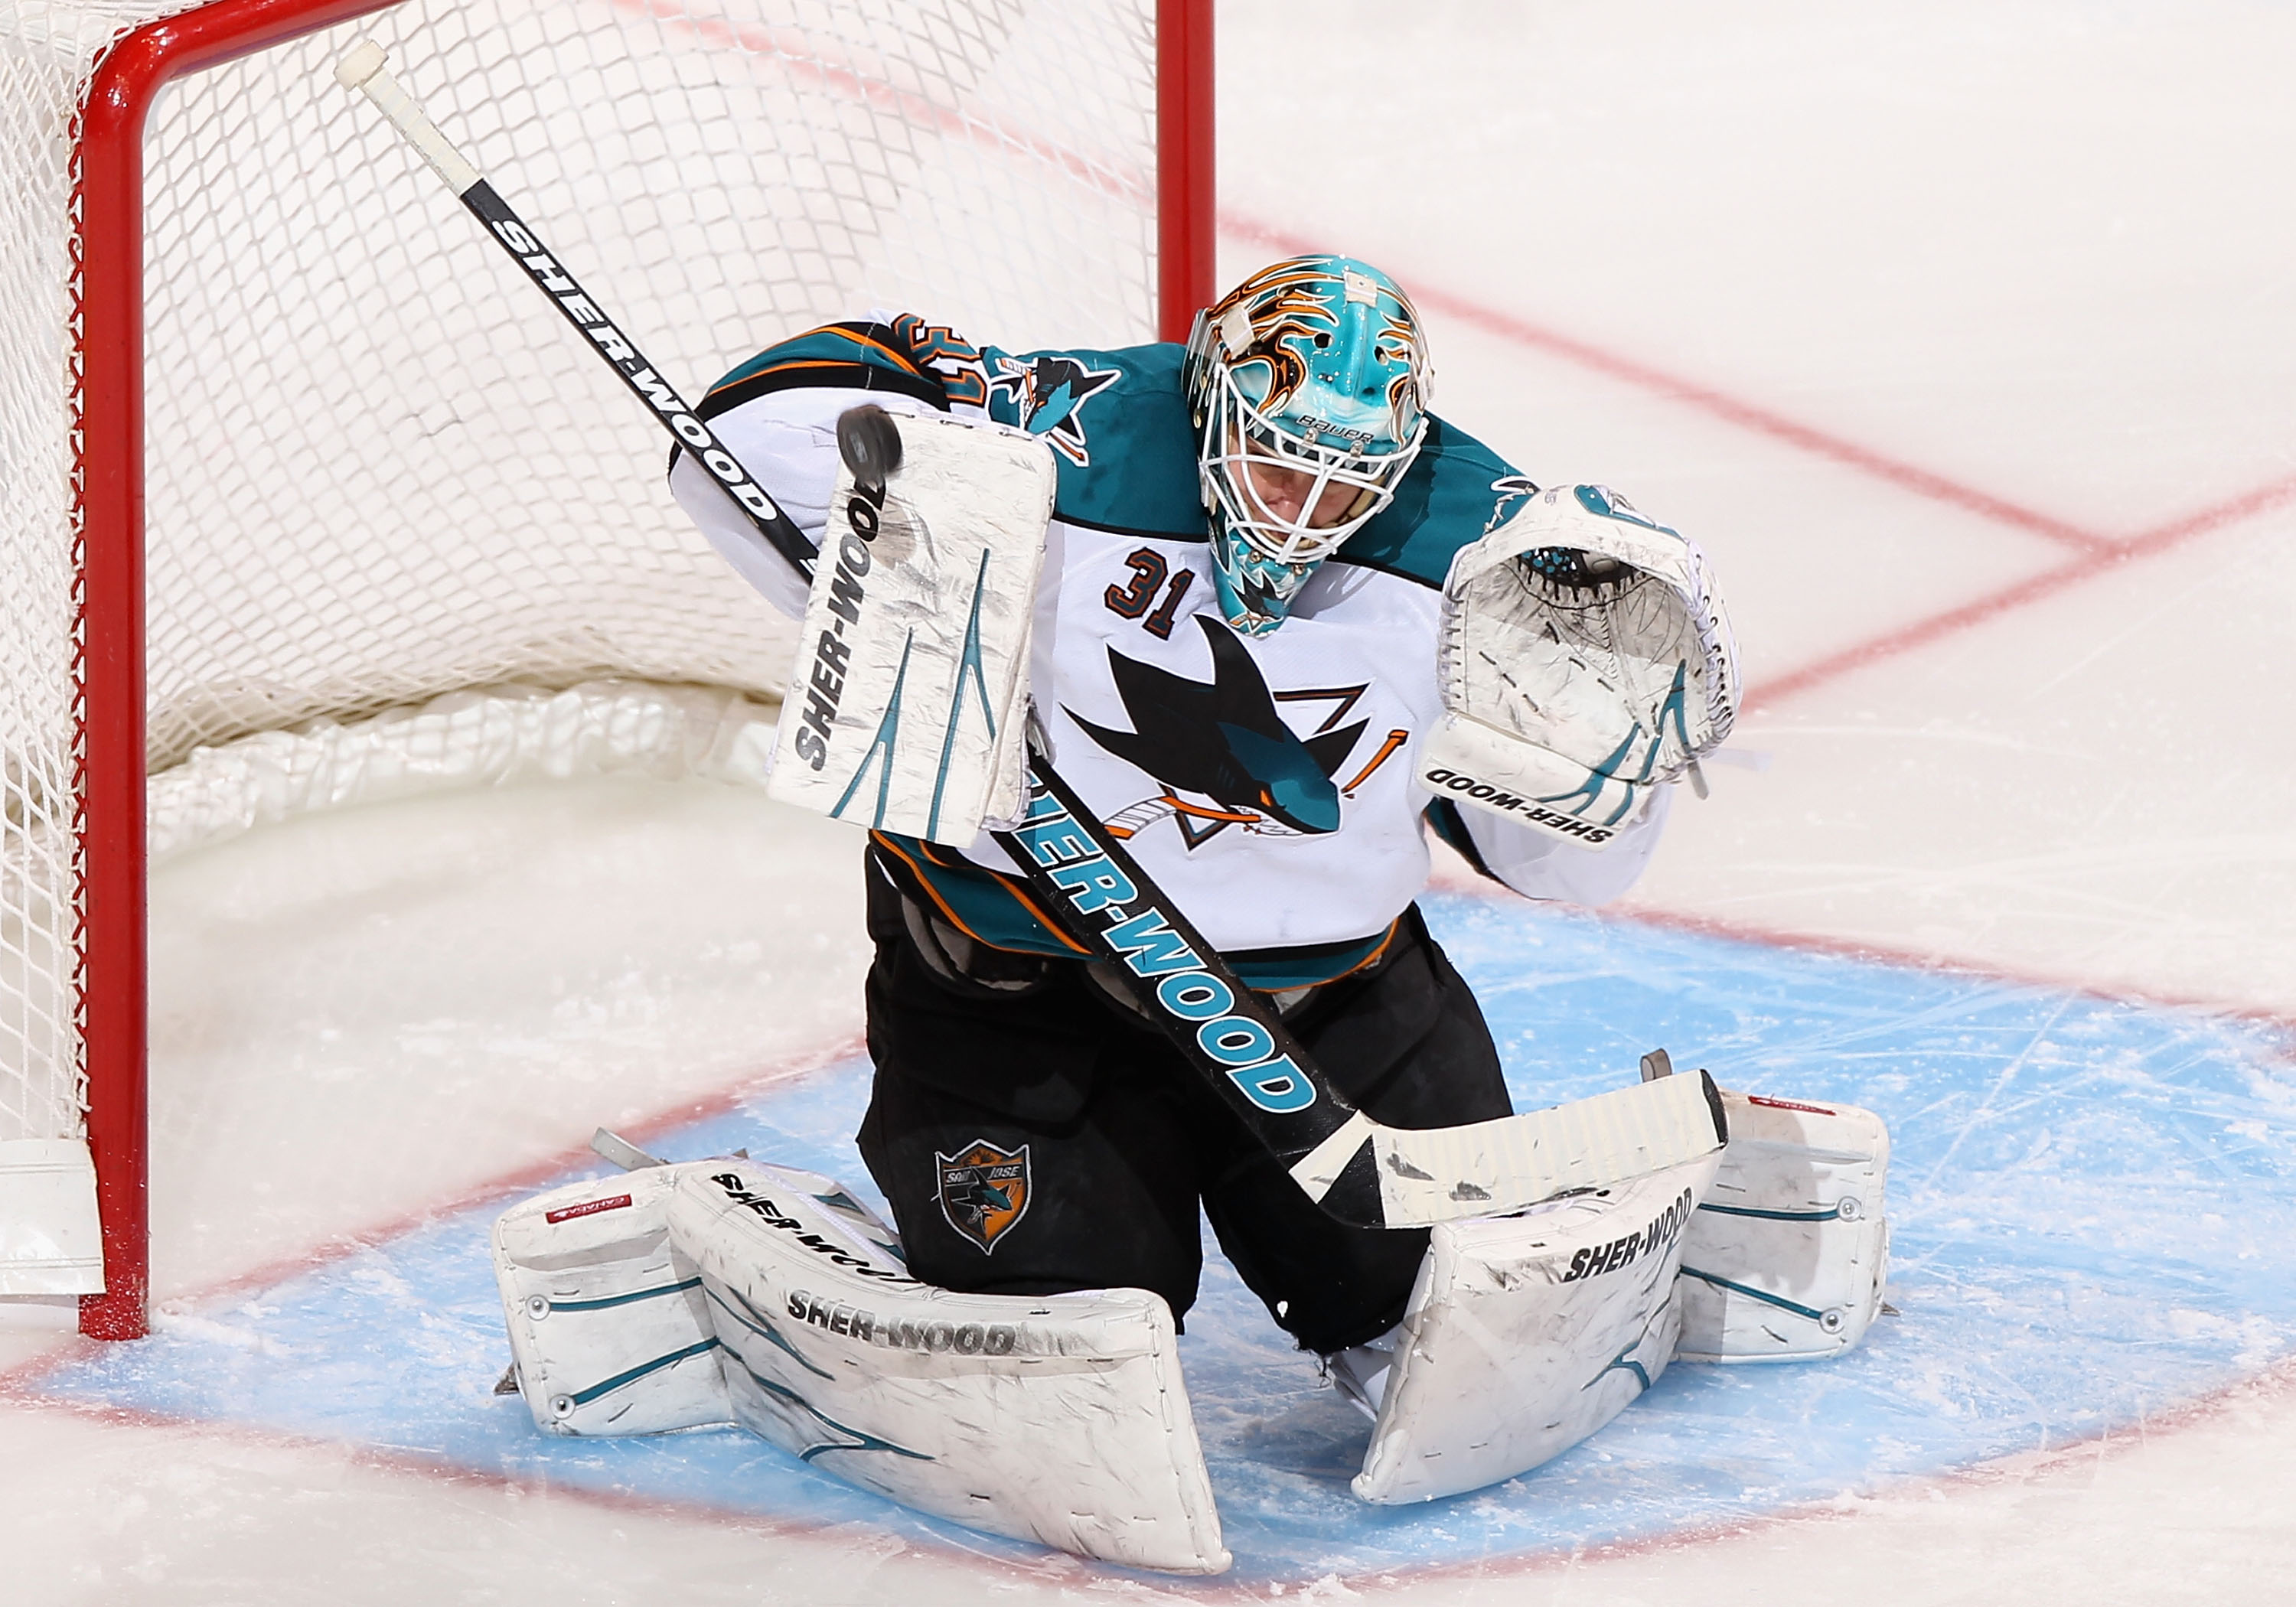 GLENDALE, AZ - JANUARY 17:  Goaltender Antti Niemi #31 of the San Jose Sharks makes a blocker save on the shot from the Phoenix Coyotes during the second period of the NHL game at Jobing.com Arena on January 17, 2011 in Glendale, Arizona.  (Photo by Chris